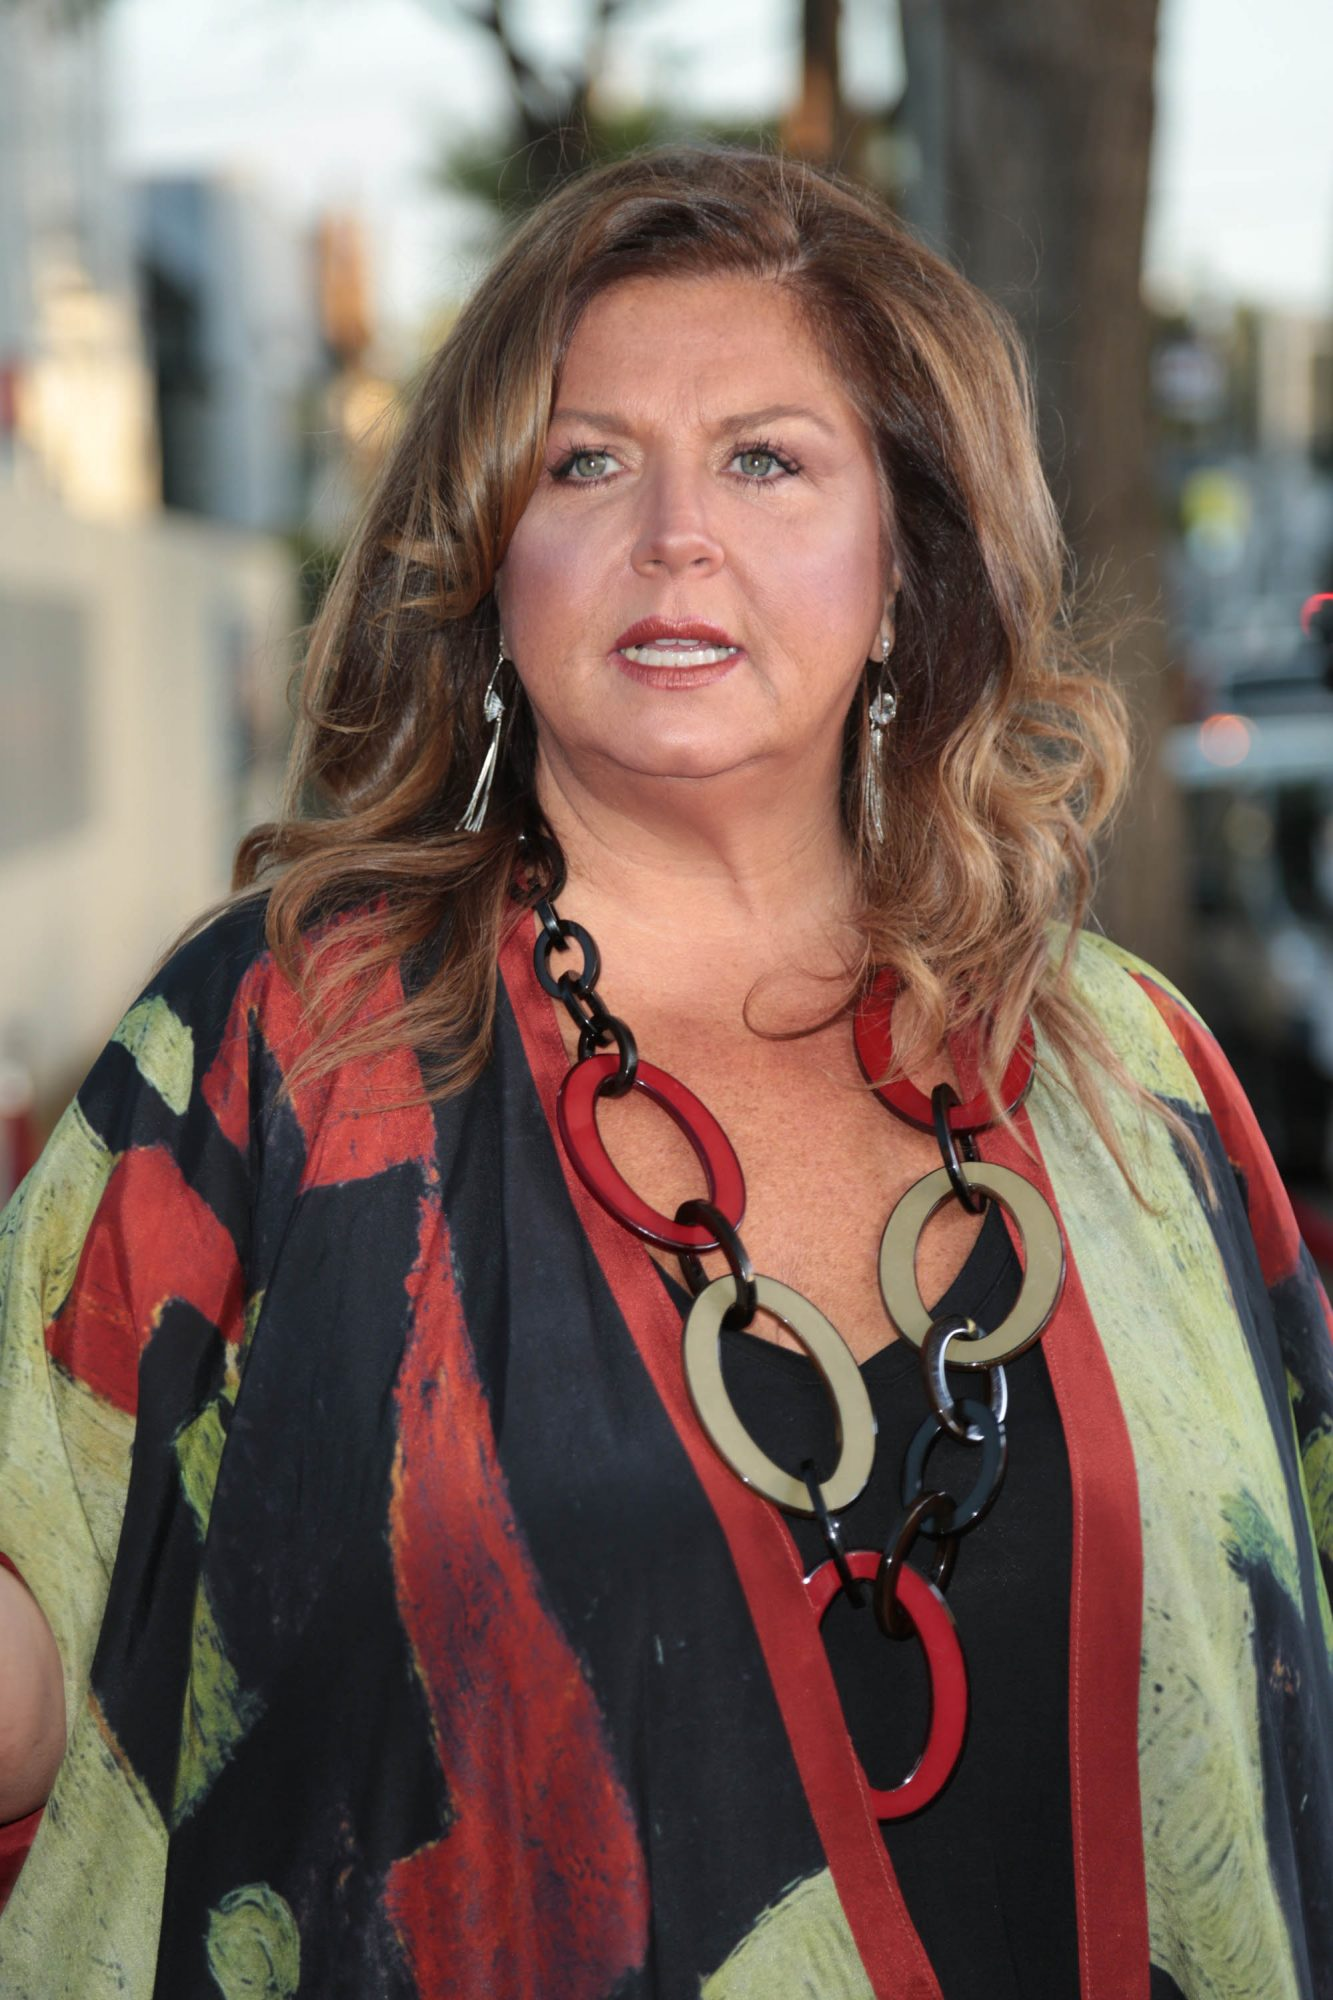 Abby Lee Miller Was Diagnosed With Non-Hodgkin Lymphoma. Here's What That Means